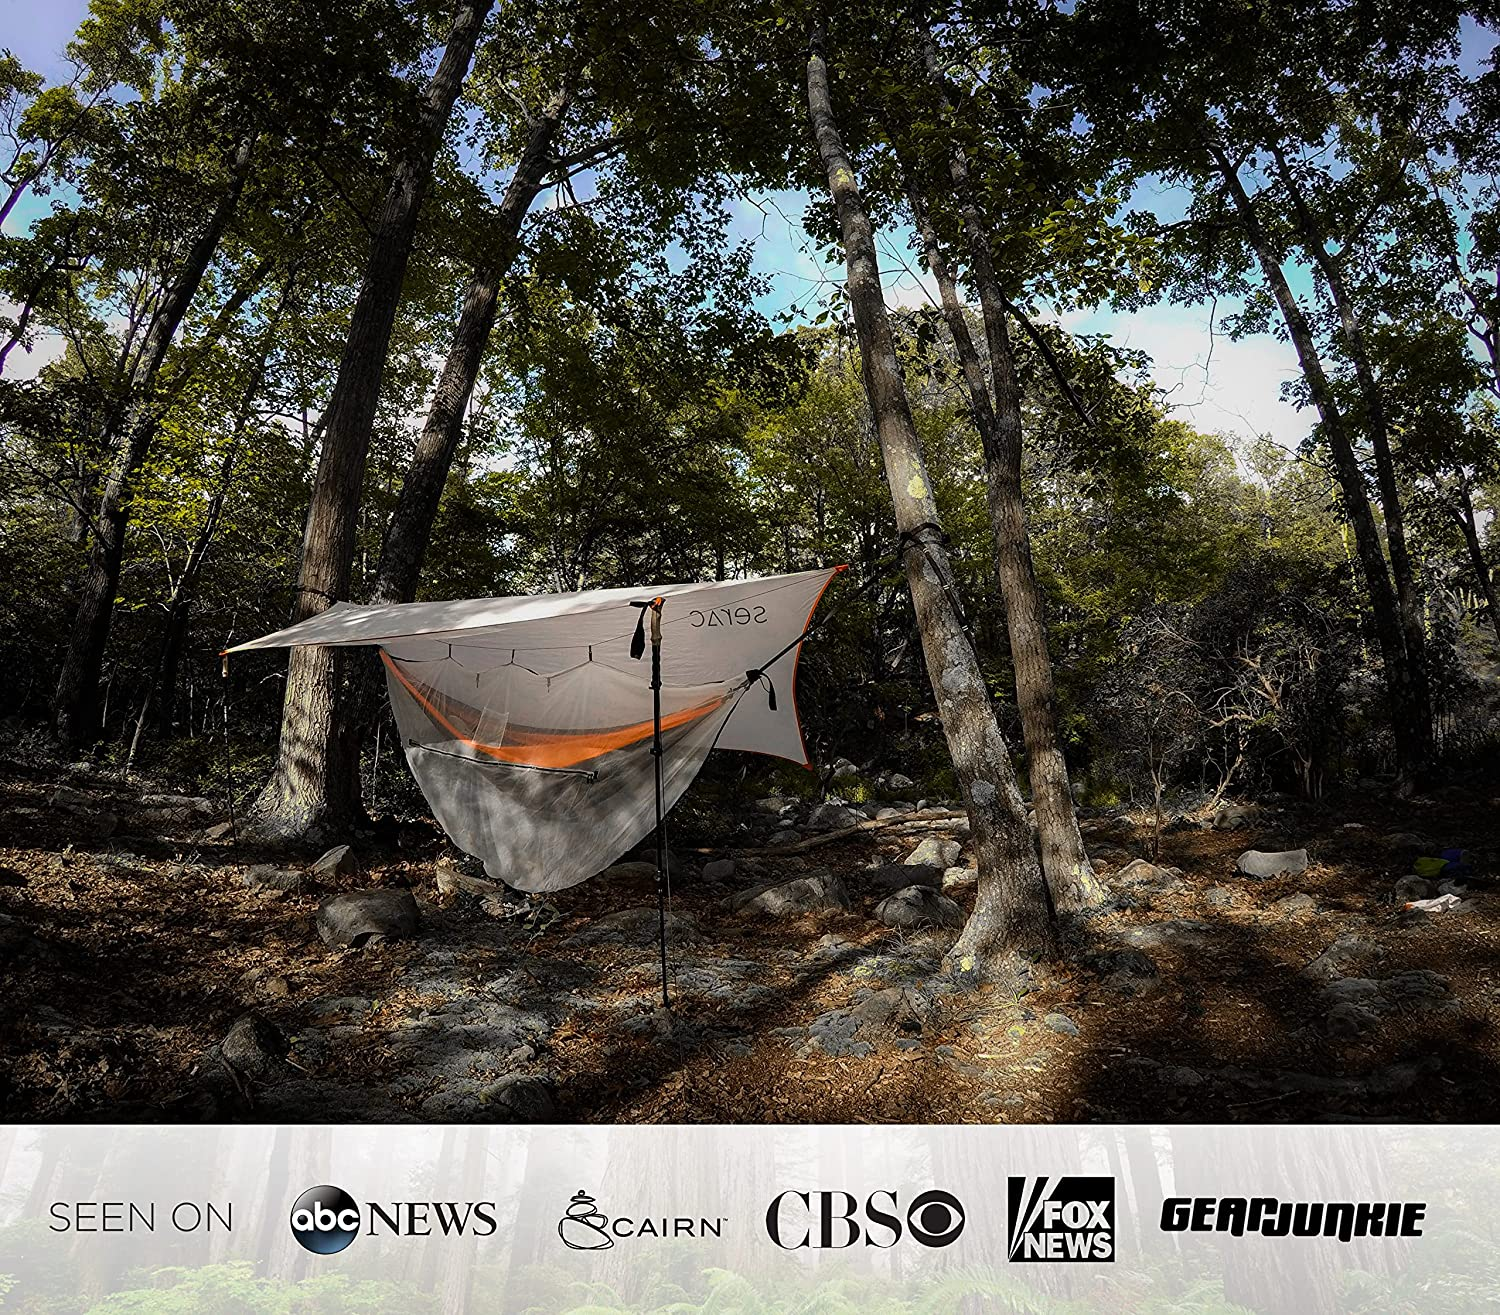 Premium Double Hammock /& Strap Bundle Sequoia XL Portable Double Camping Hammock with Ripstop Nylon and Quick-Hang Suspension System Serac